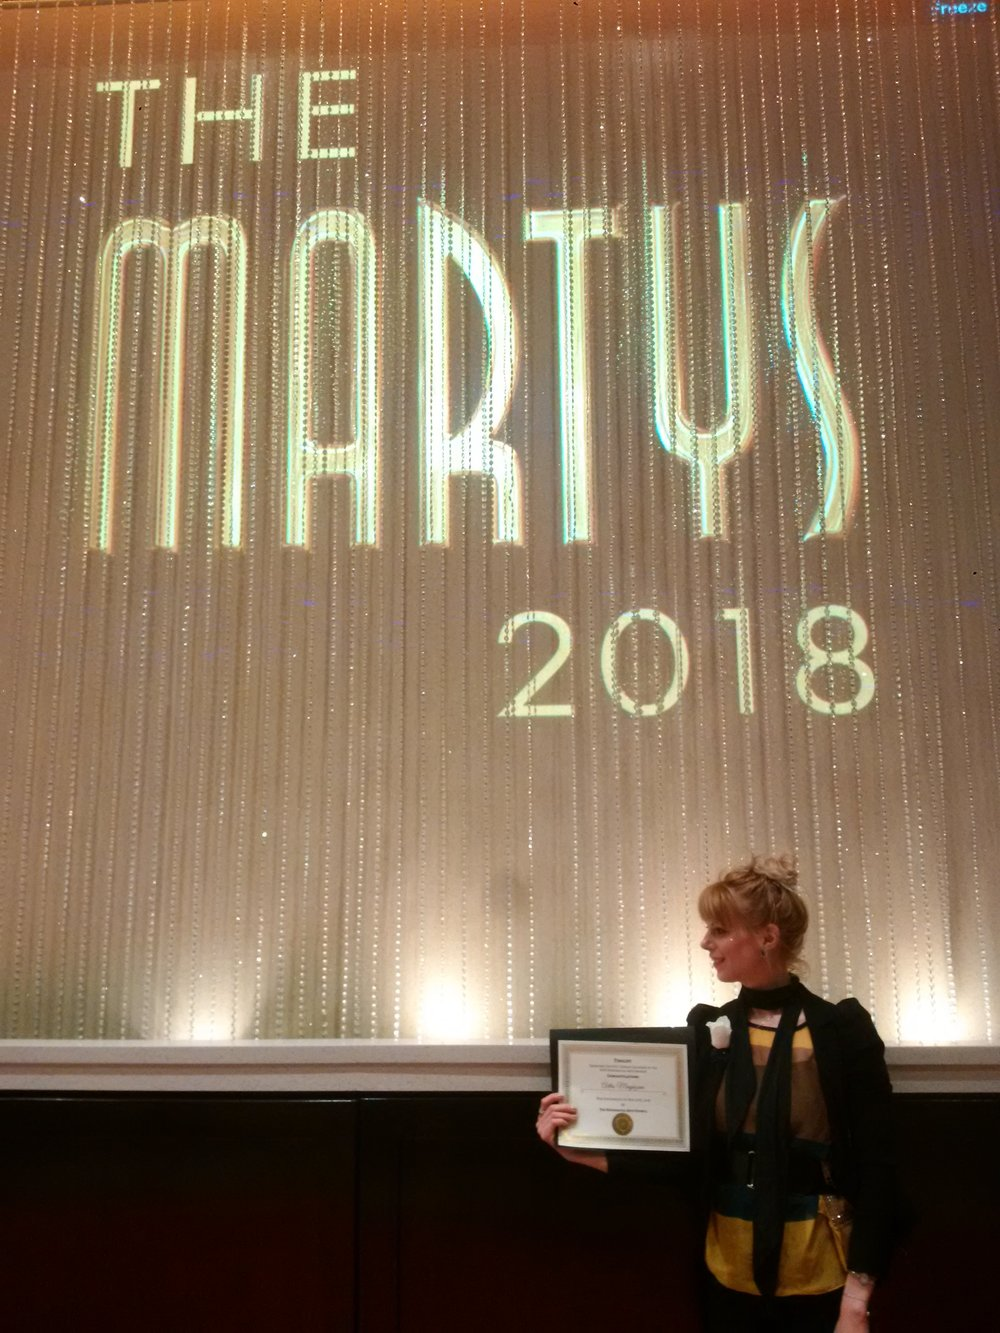 The Artis was honoured to be a Finalist at the 24th annual MARTY Awards! - Publisher & Editor-in-Chief of The Artis magazine, Ivy Reiss, at the MARTY Awards ceremony on May 10th 2018, holding The Artis team's hard earned certificate!Photo: Frank Veri